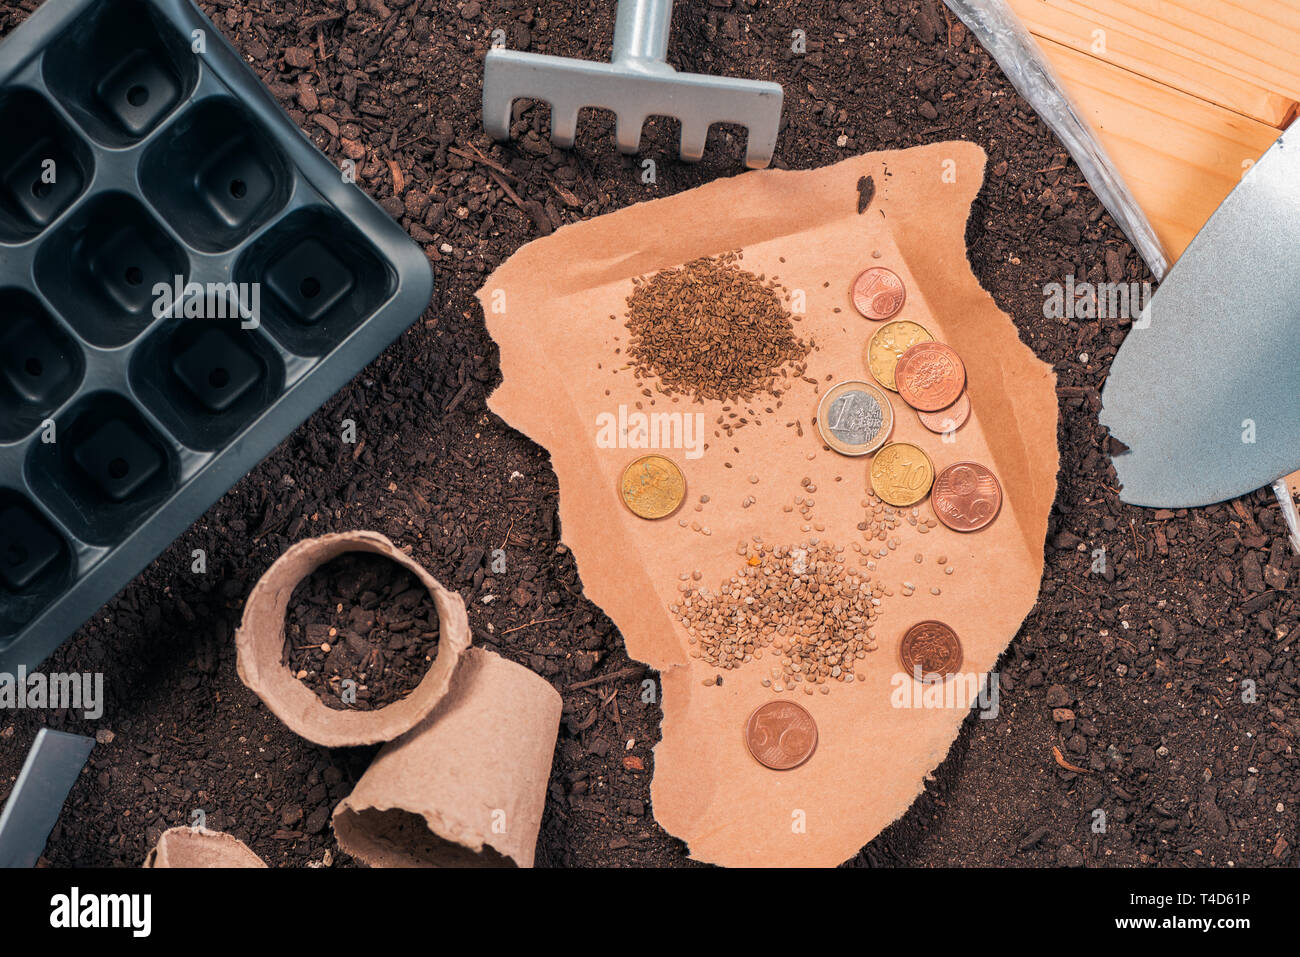 Inexpensive organic food production and gardening equipment, top view of tools and seed on wooden table in garden with some euro coins as concept of l - Stock Image